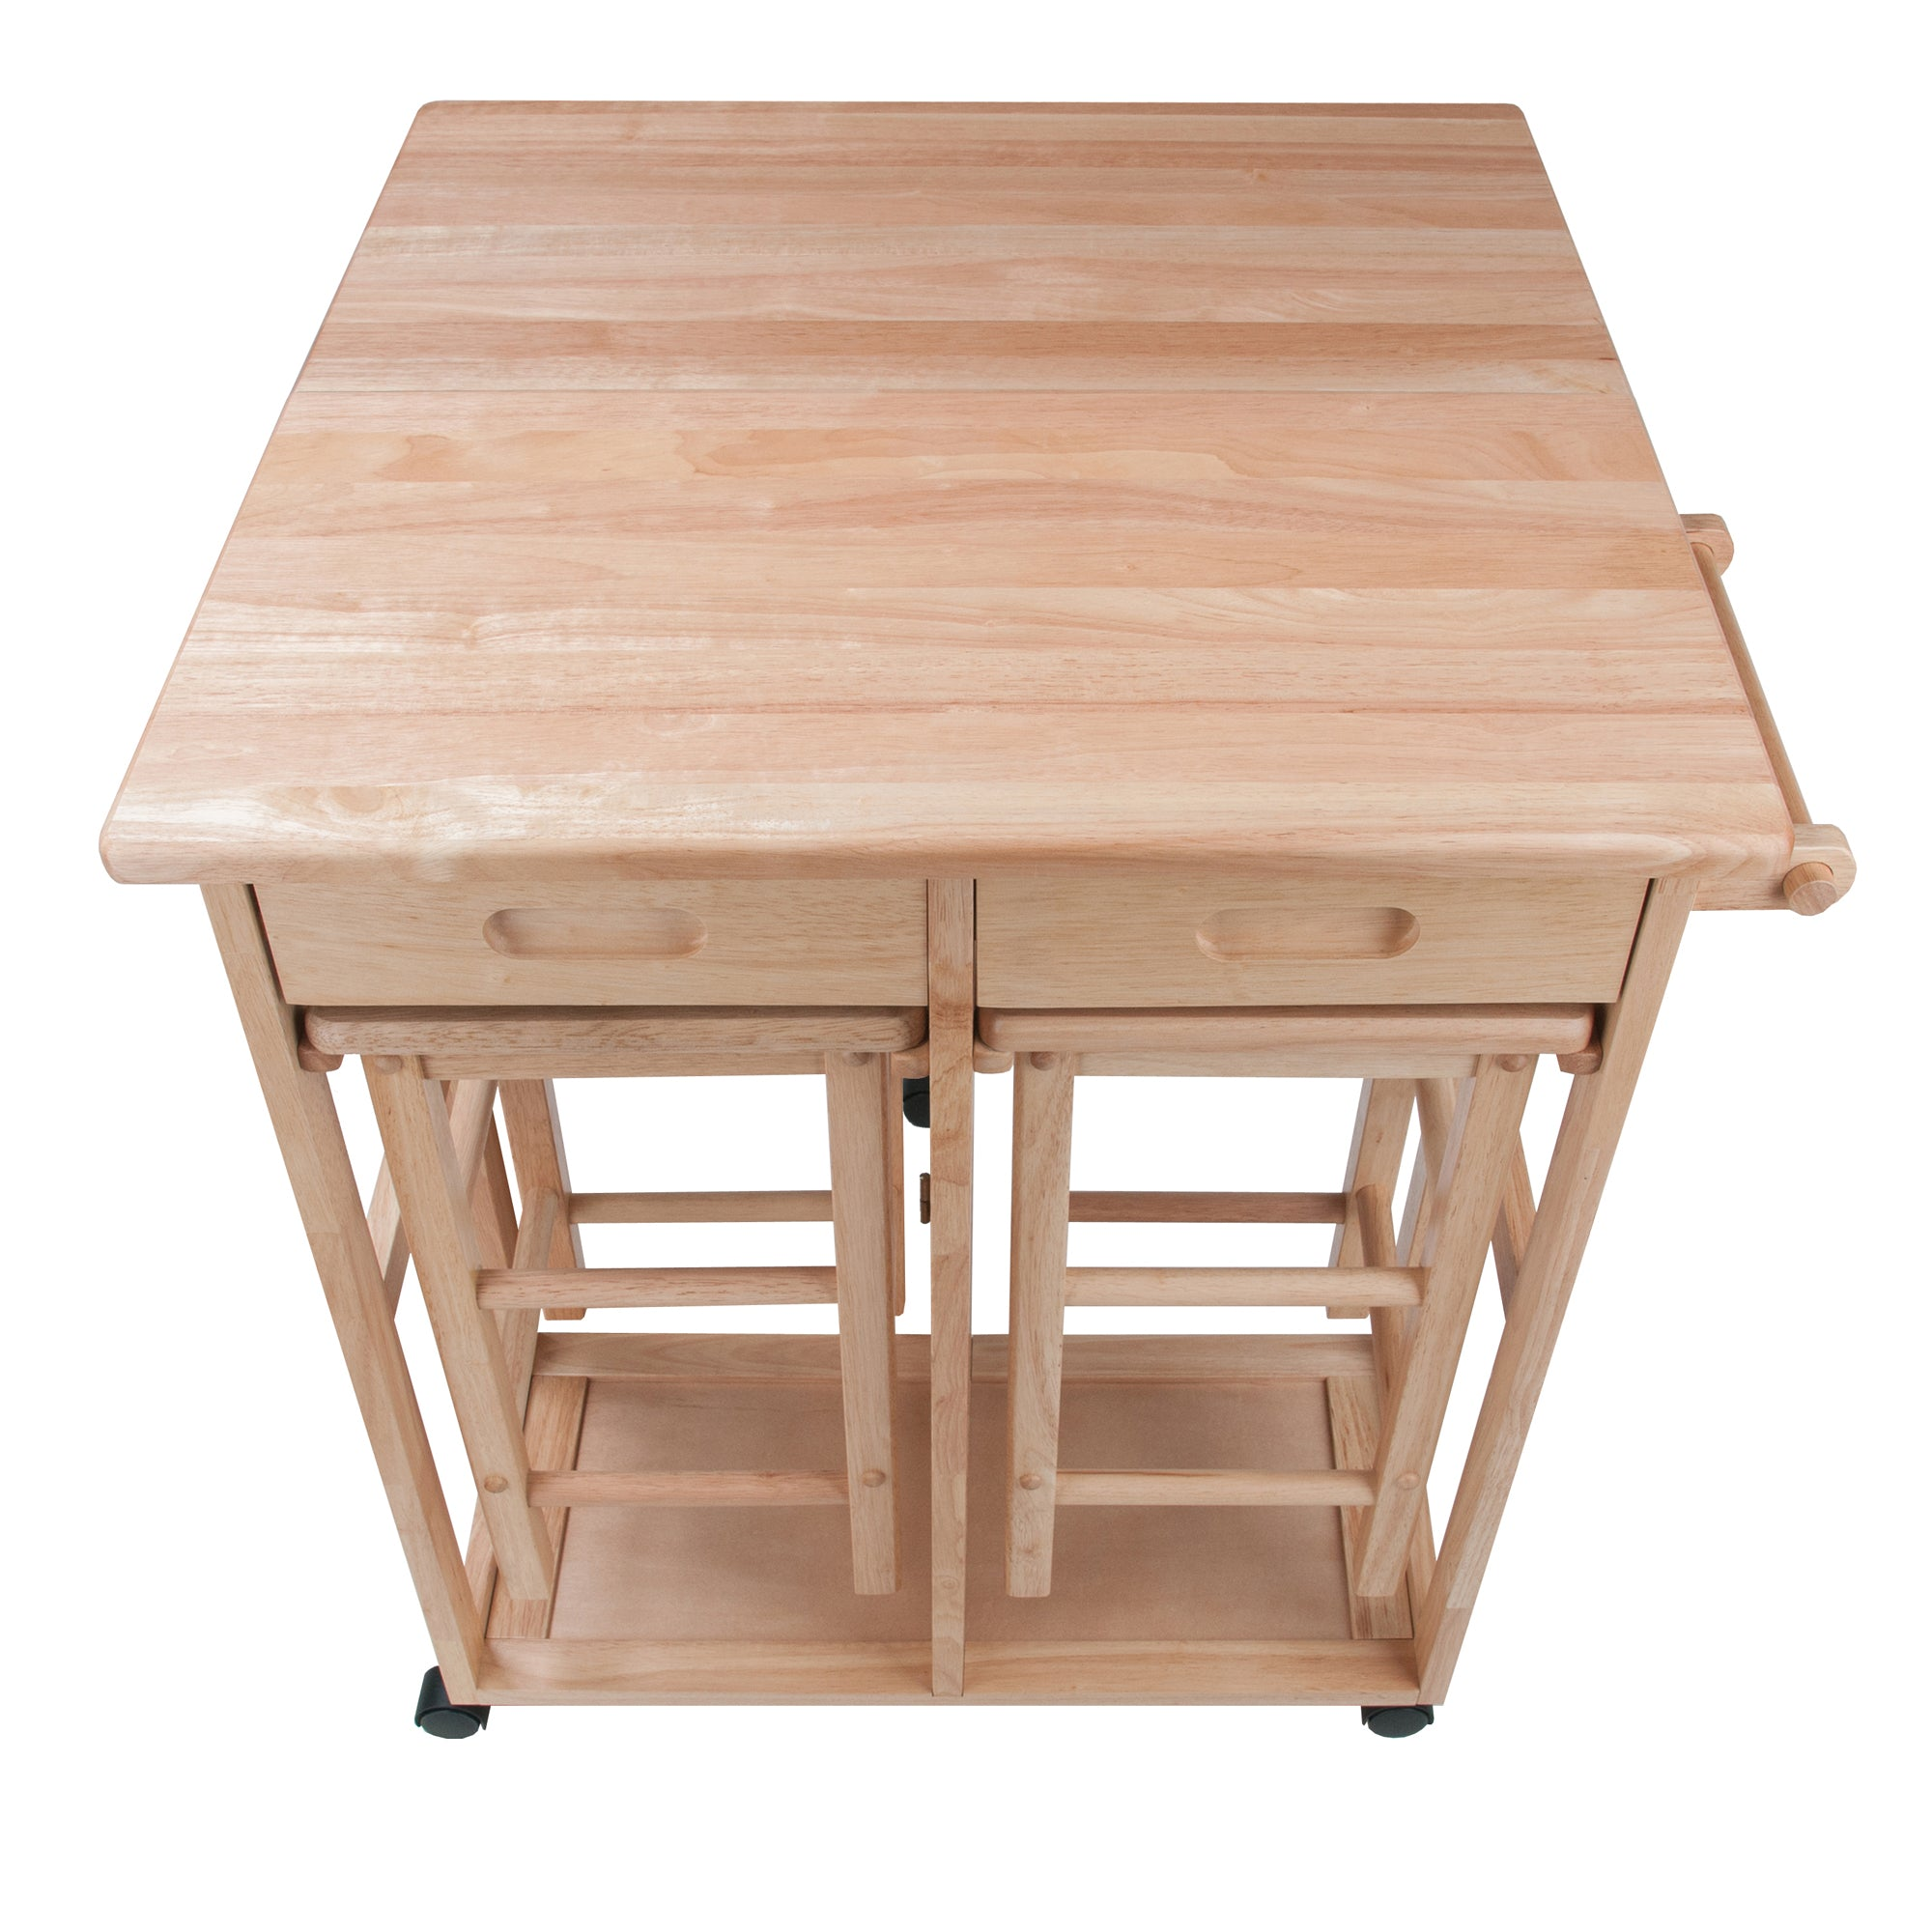 Space Saving Drop Leaf Table And Stools, Natural